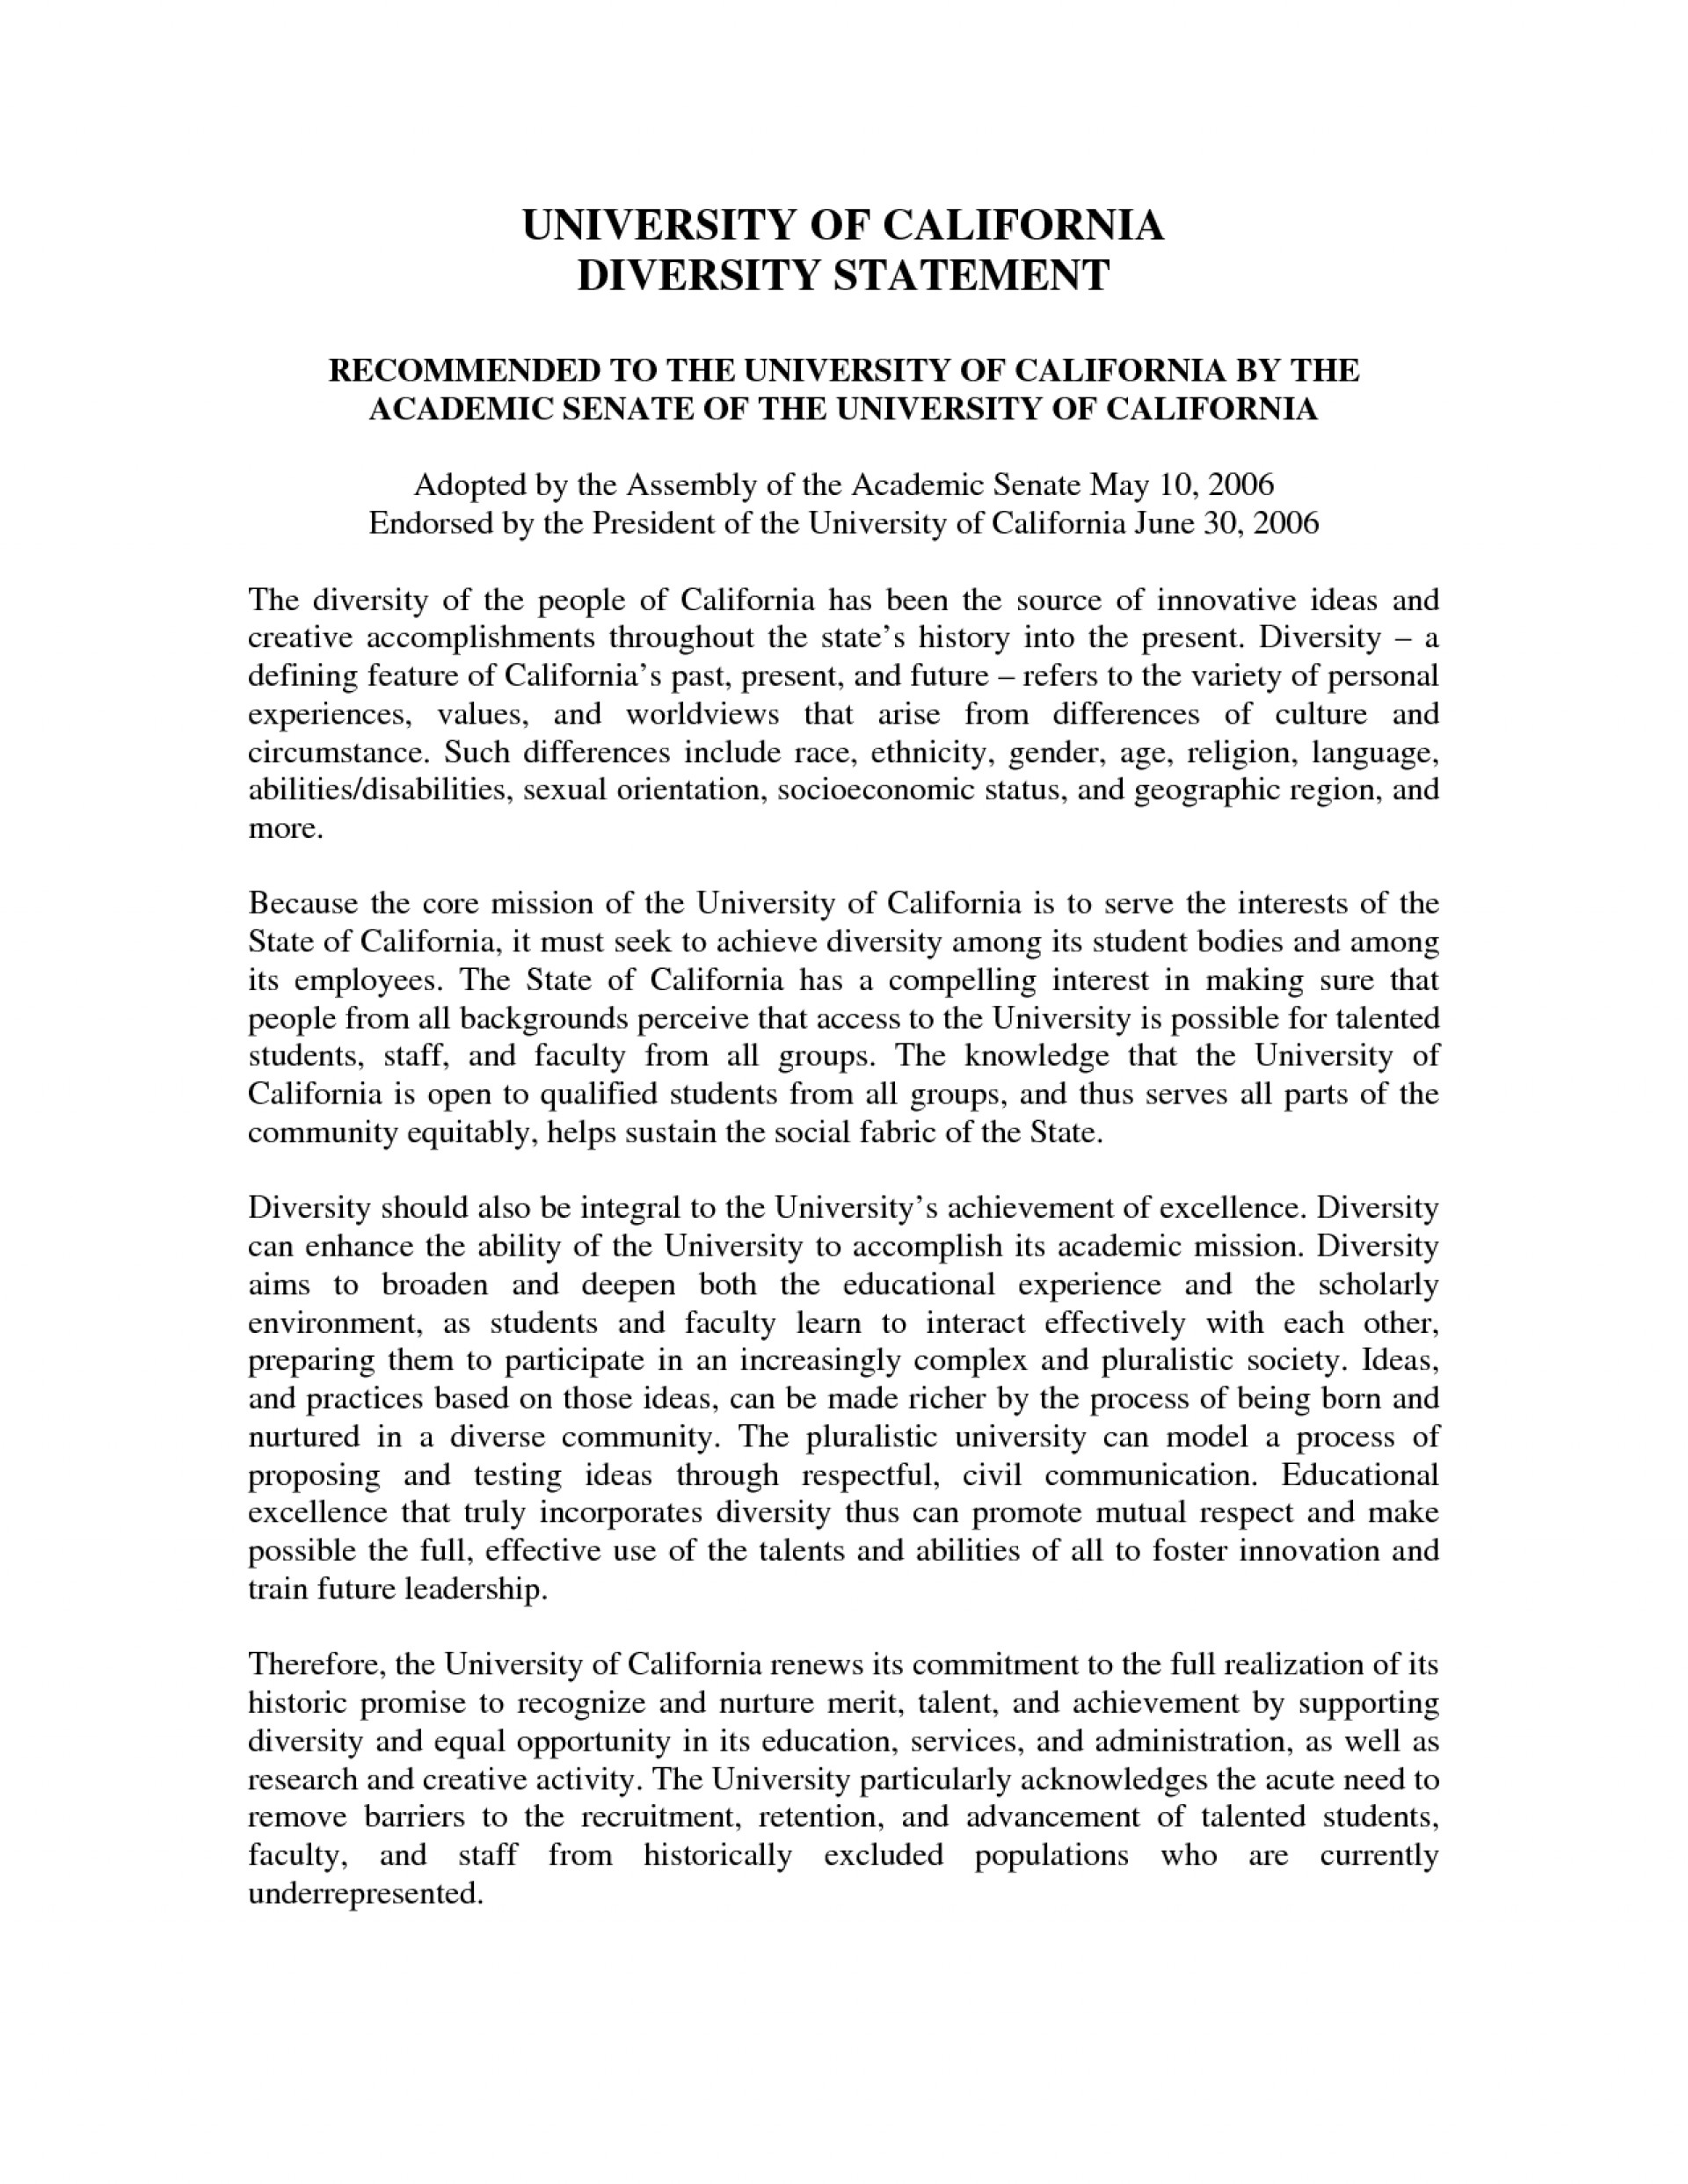 003 Essay Example What Is Diversity Essays On In Colleges How Will You Contribute To Sample Statement Template Remarkable Uw Law School 1920